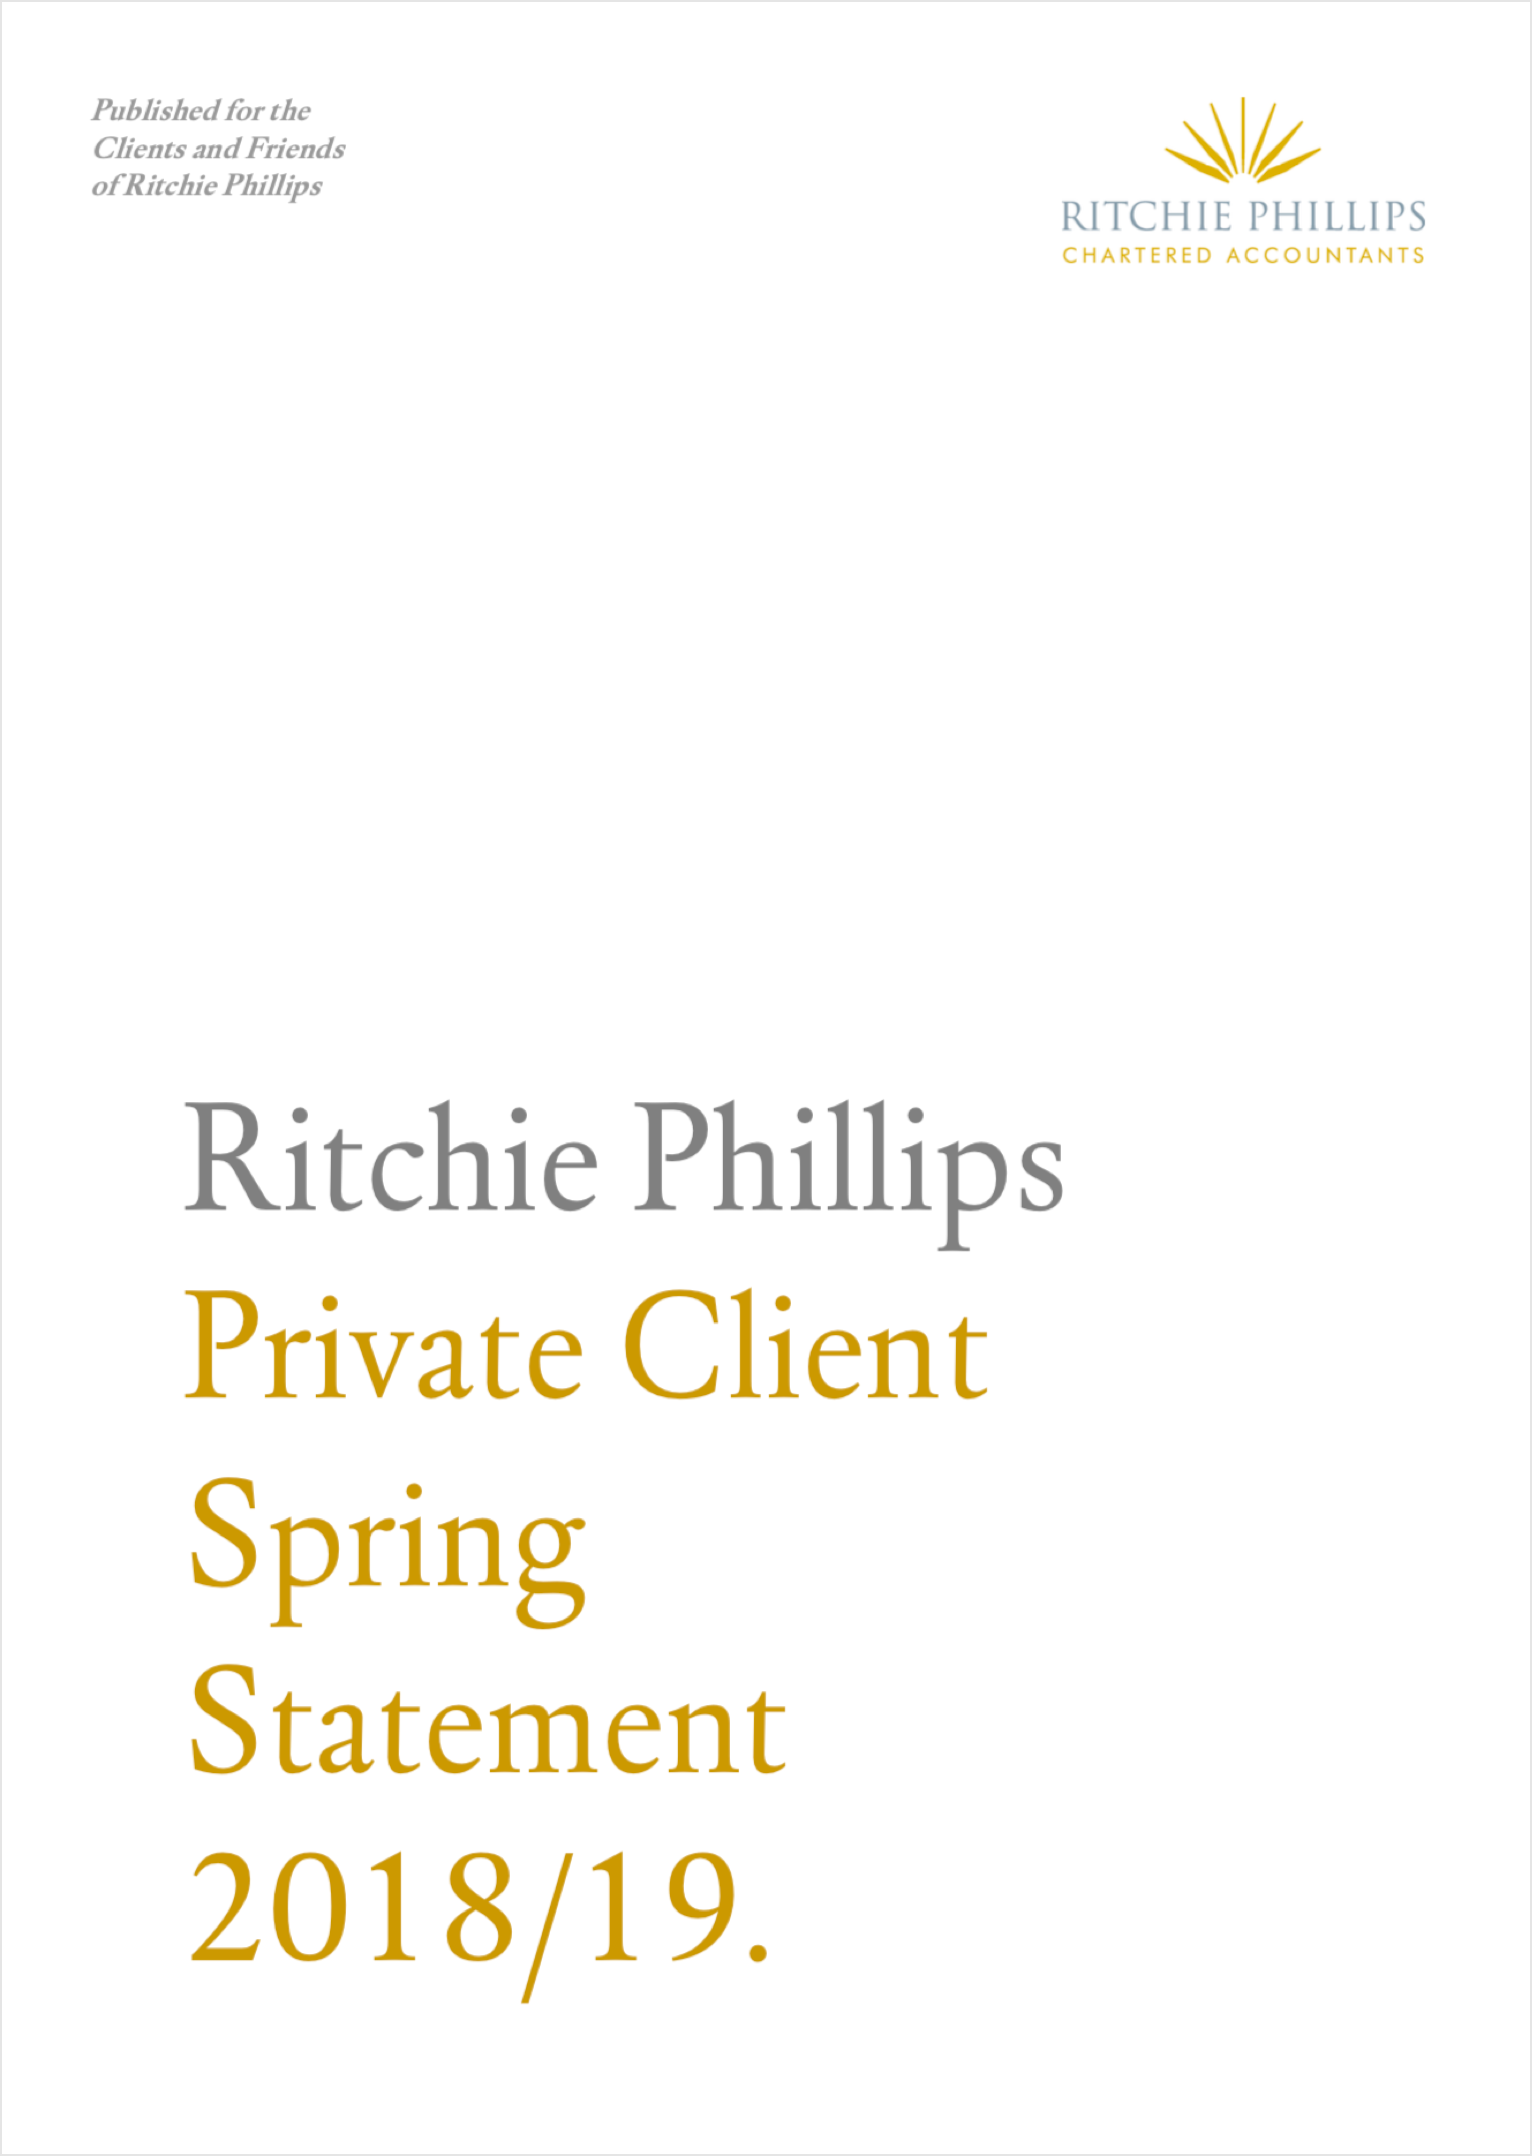 img-pdf-cover-spring-statement-2018-19